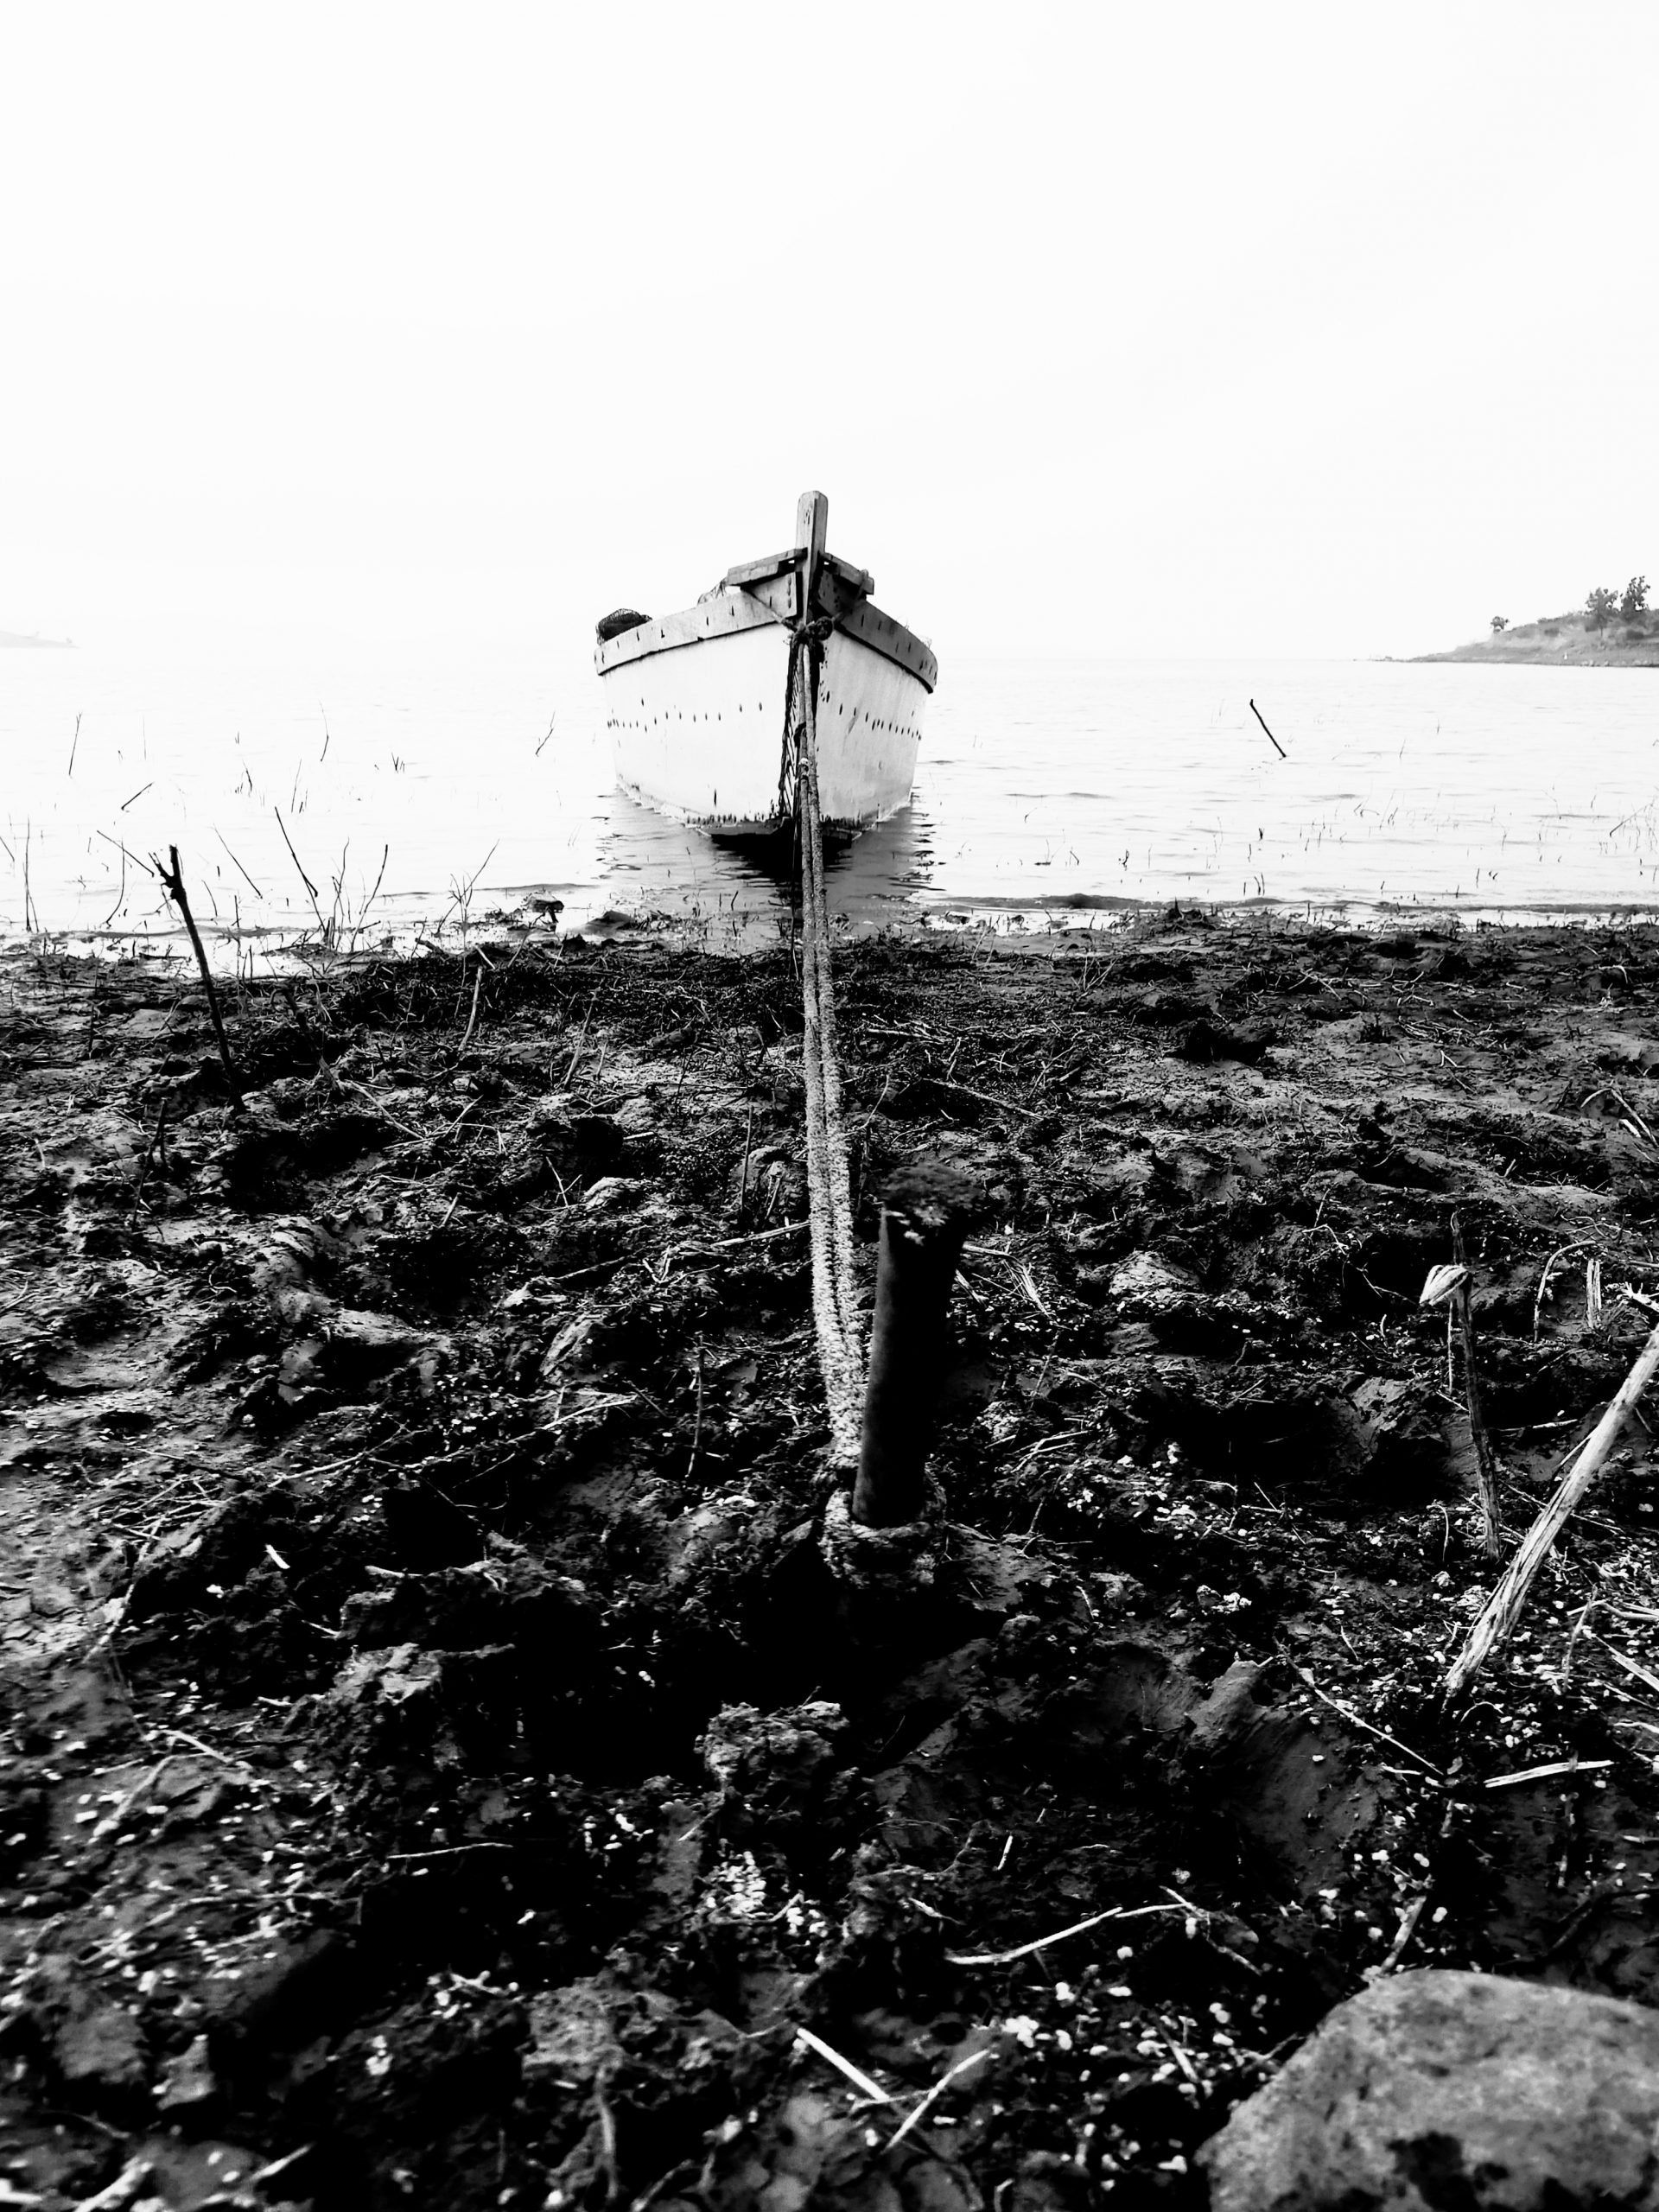 A boat tied to shore